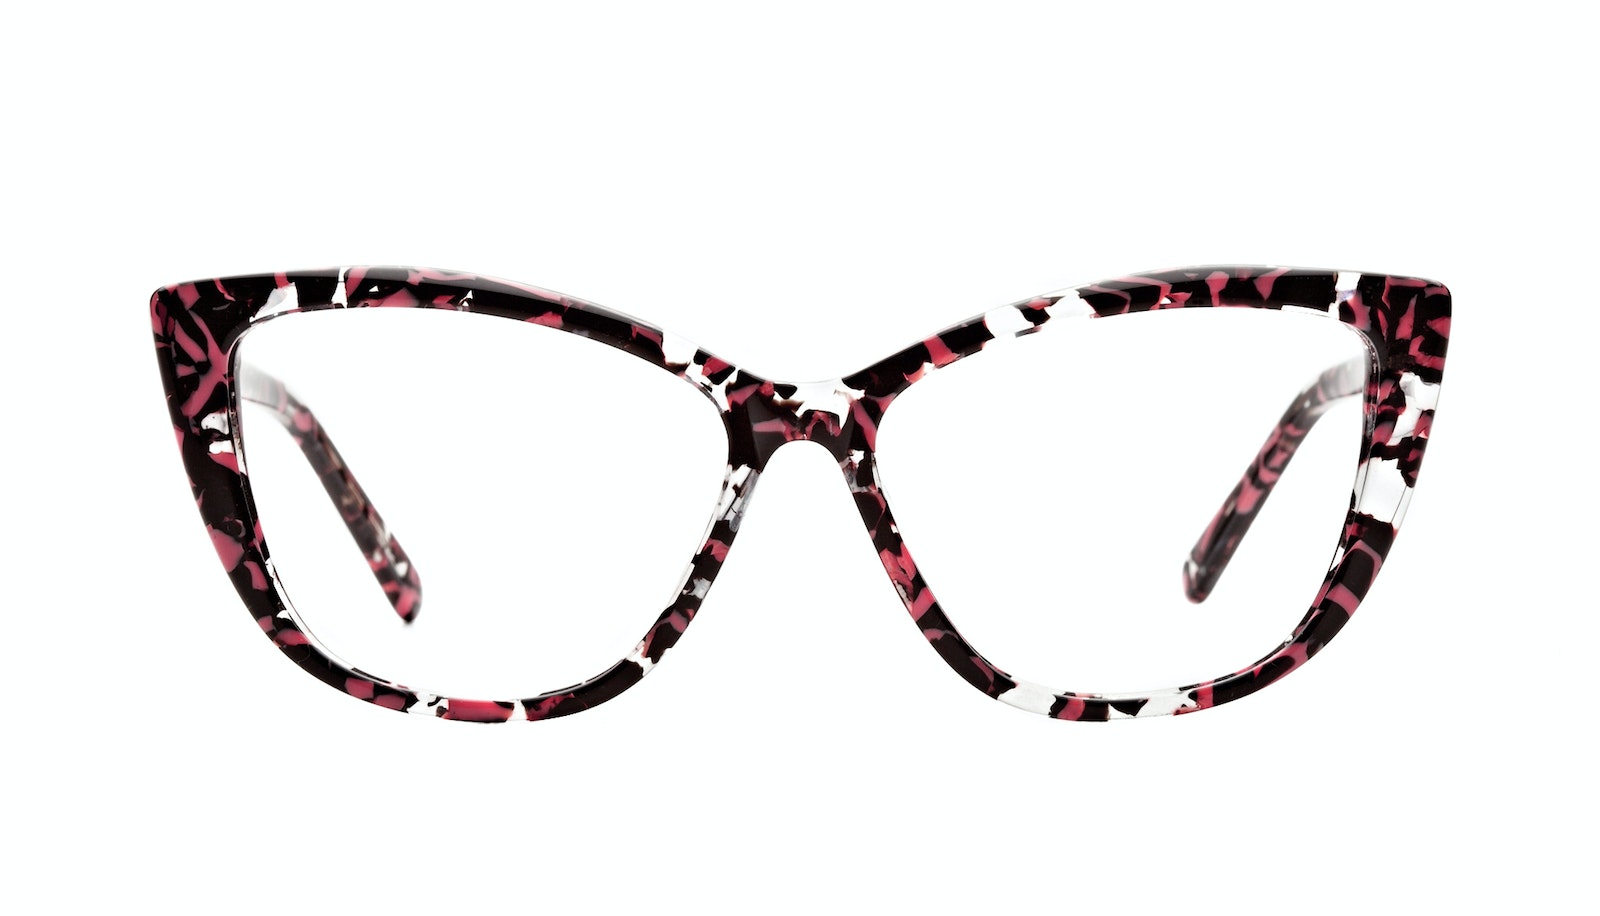 Affordable Fashion Glasses Cat Eye Daring Cateye Eyeglasses Women Dolled Up Surprise Coral